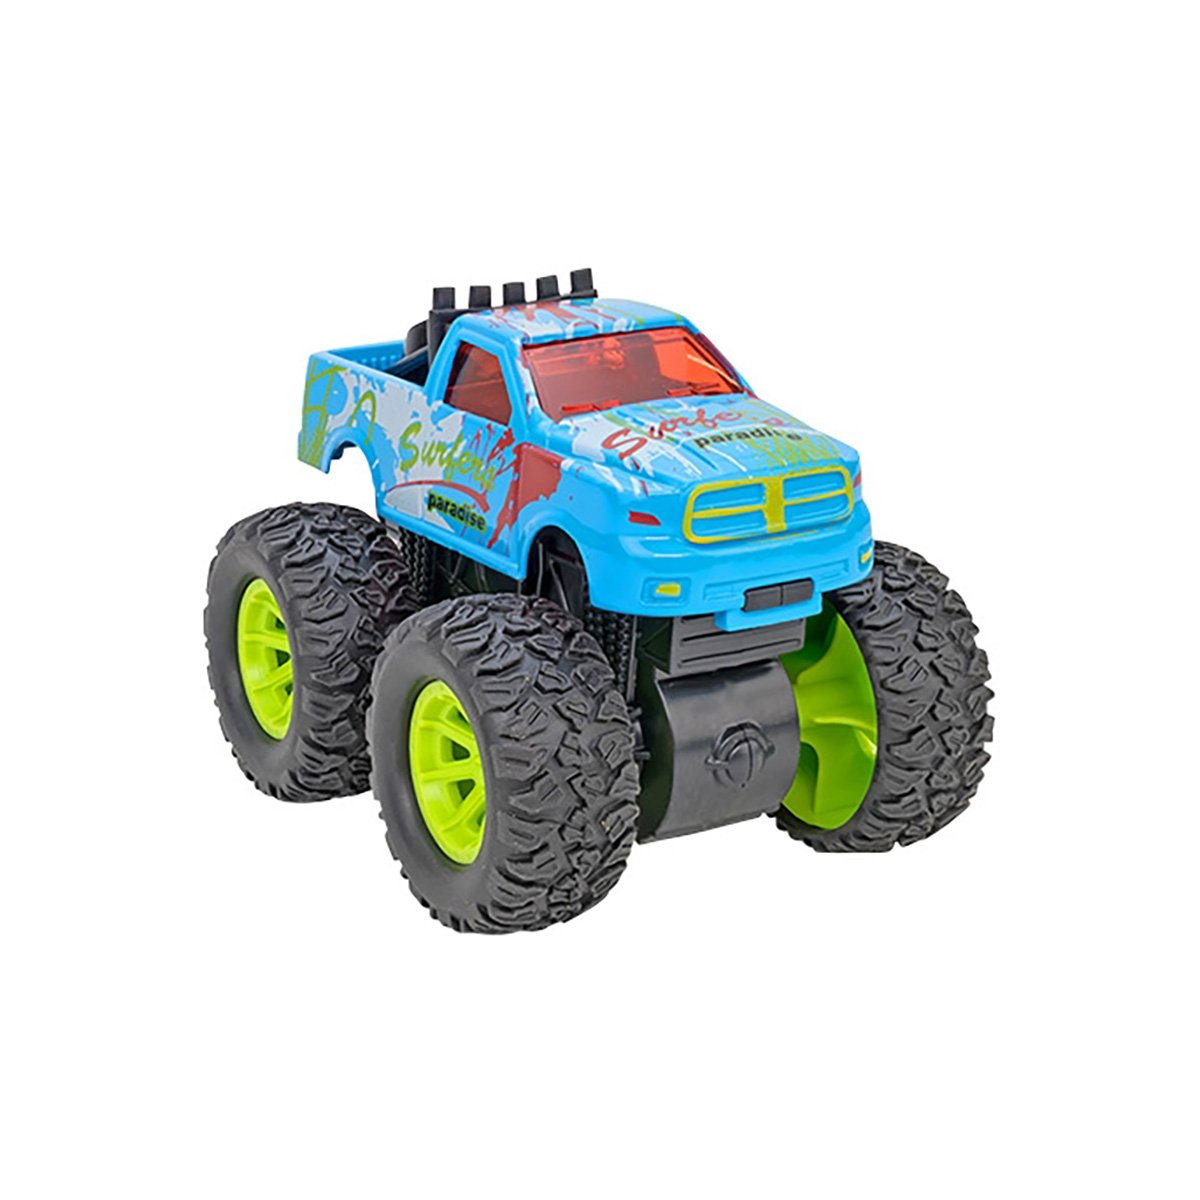 Masinuta Monster Truck Globo Die Cast, Blue